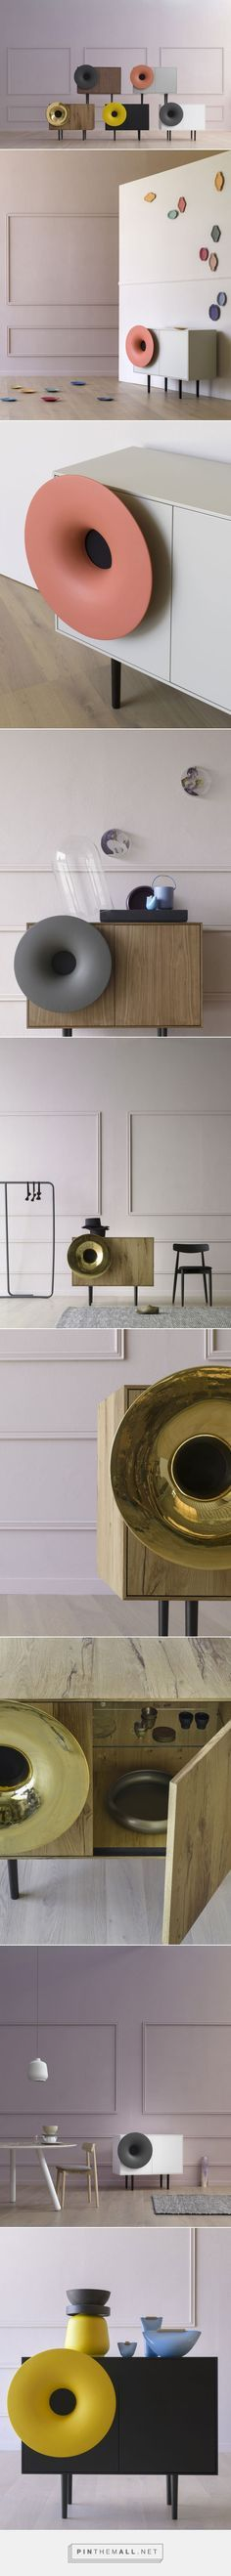 """A Cabinet with A Bluetooth Speaker - Design Milk - created via <a href=""""https://pinthemall.net"""" rel=""""nofollow"""" target=""""_blank"""">pinthemall.net</a> This appears magnificent? So what do you feel?"""